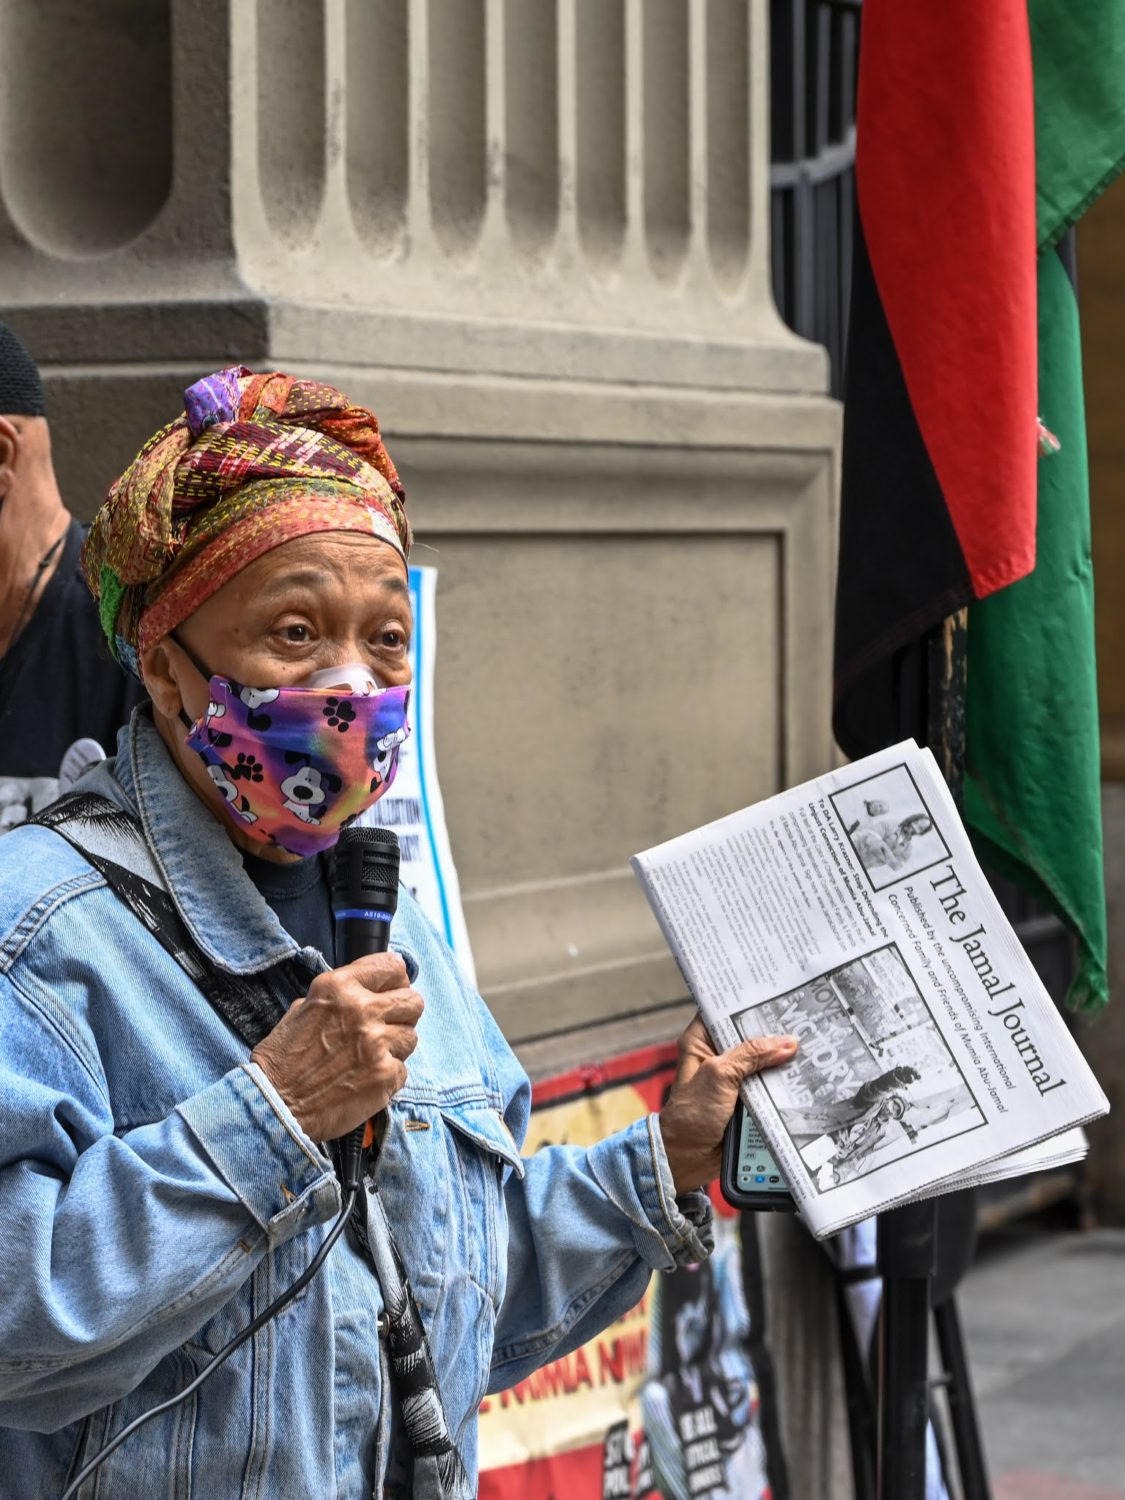 Pam-Africa-presents-first-issue-Jamal-Journal-outside-Philly-DA-Larry-Krasners-office-031221-by-Joe-Piette, Pam Africa: As Mumia awaits heart surgery, We are issuing a challenge to CNN's Michael Smerconish and DA Larry Krasner, Behind Enemy Lines